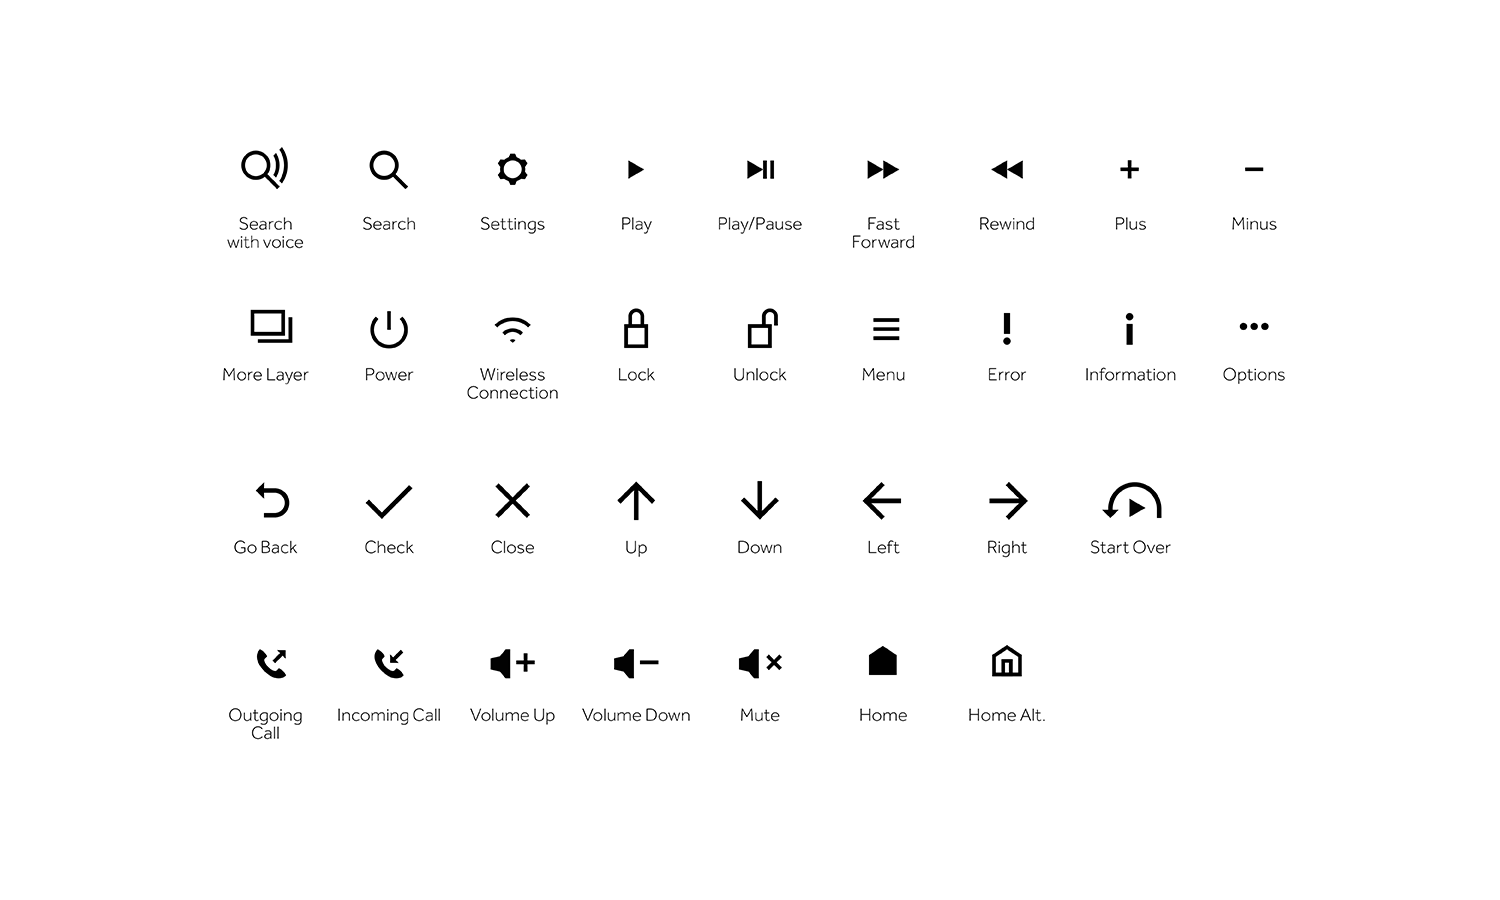 mchiao_oncue_03_iconography.png